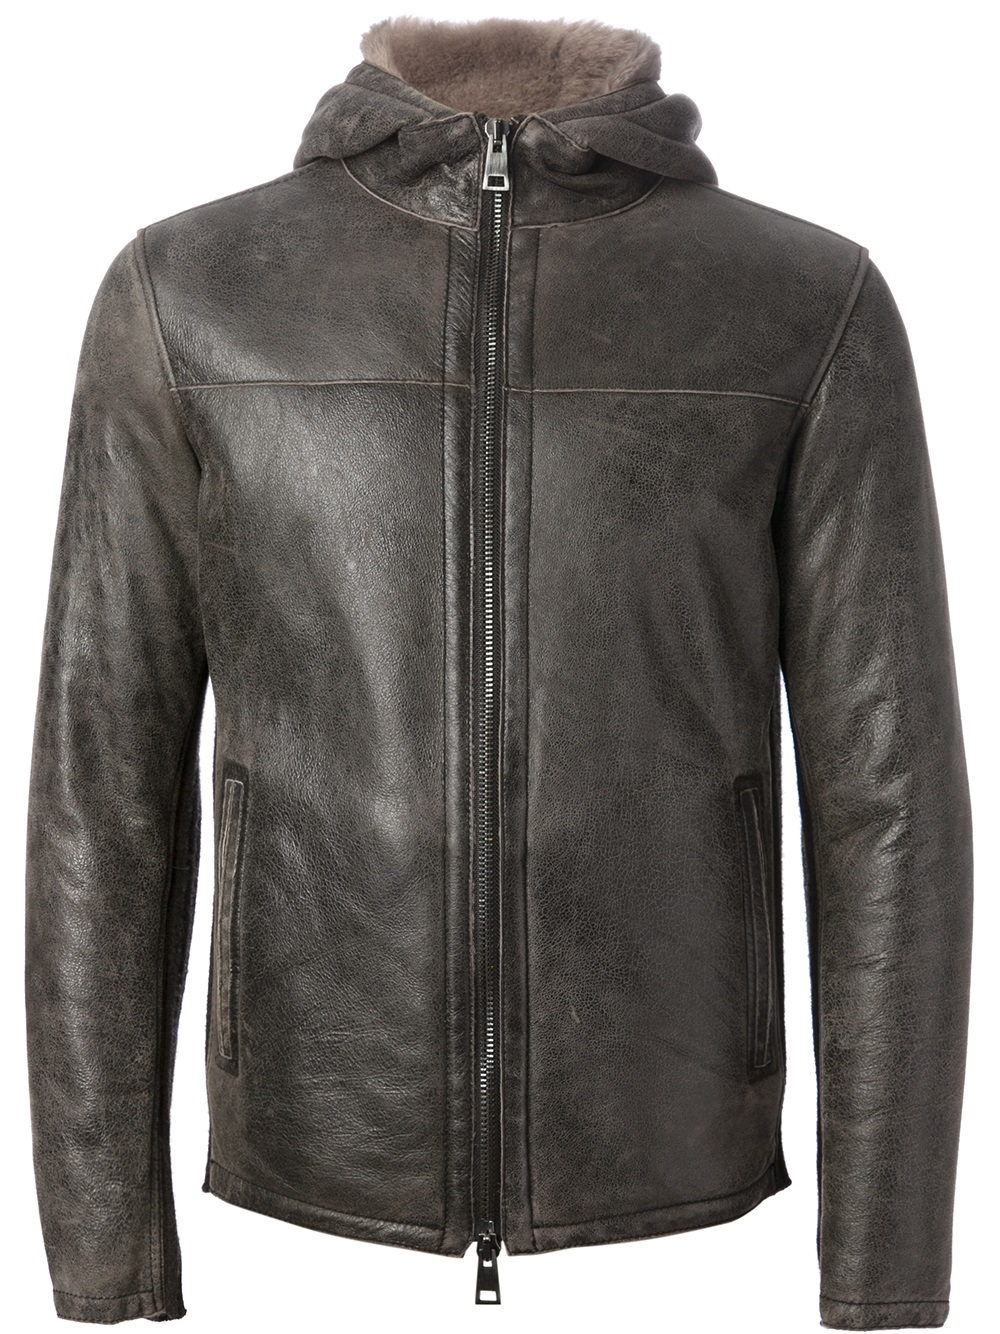 Gms 75 Hooded Leather Jacket In Brown For Men Lyst